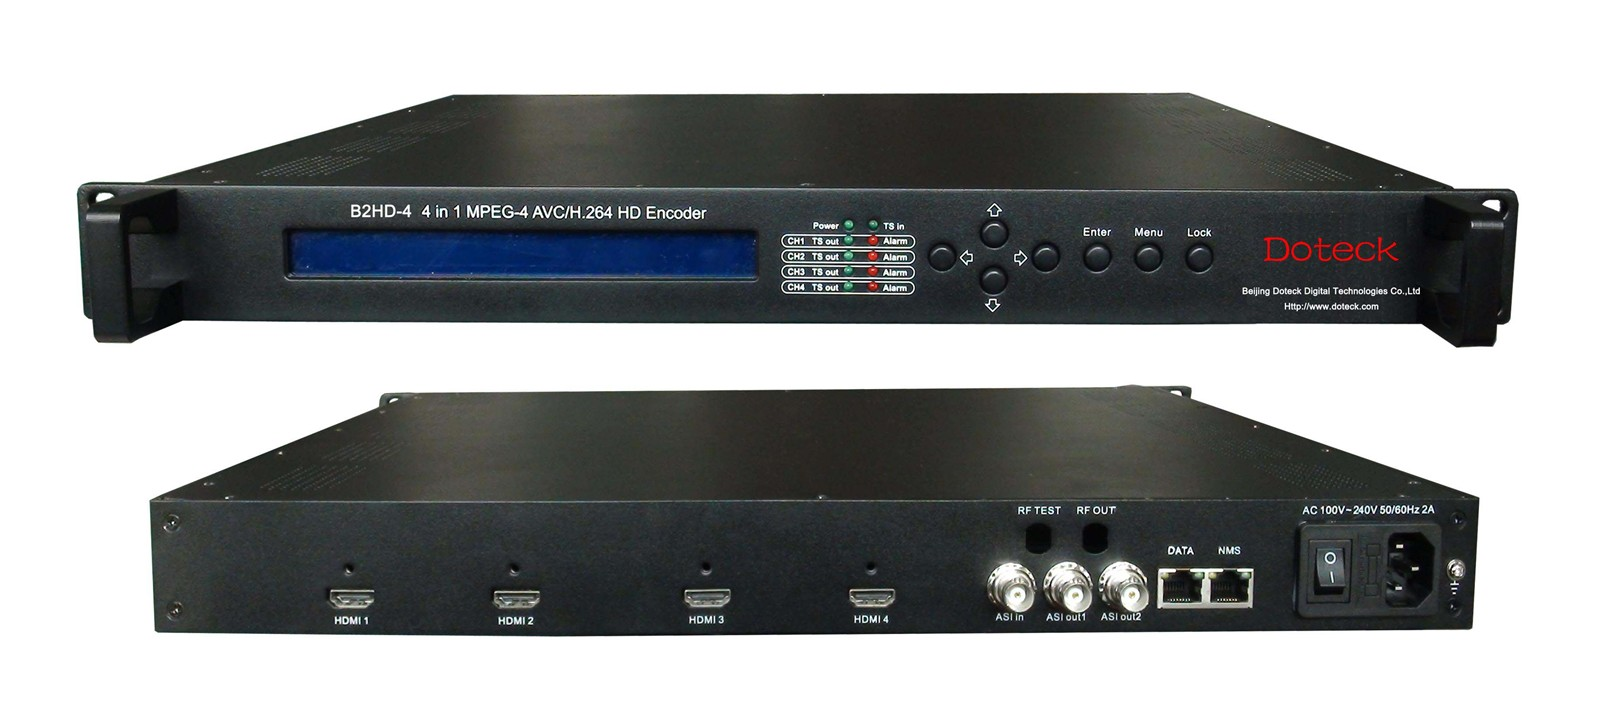 HD encoder with 4 inputs